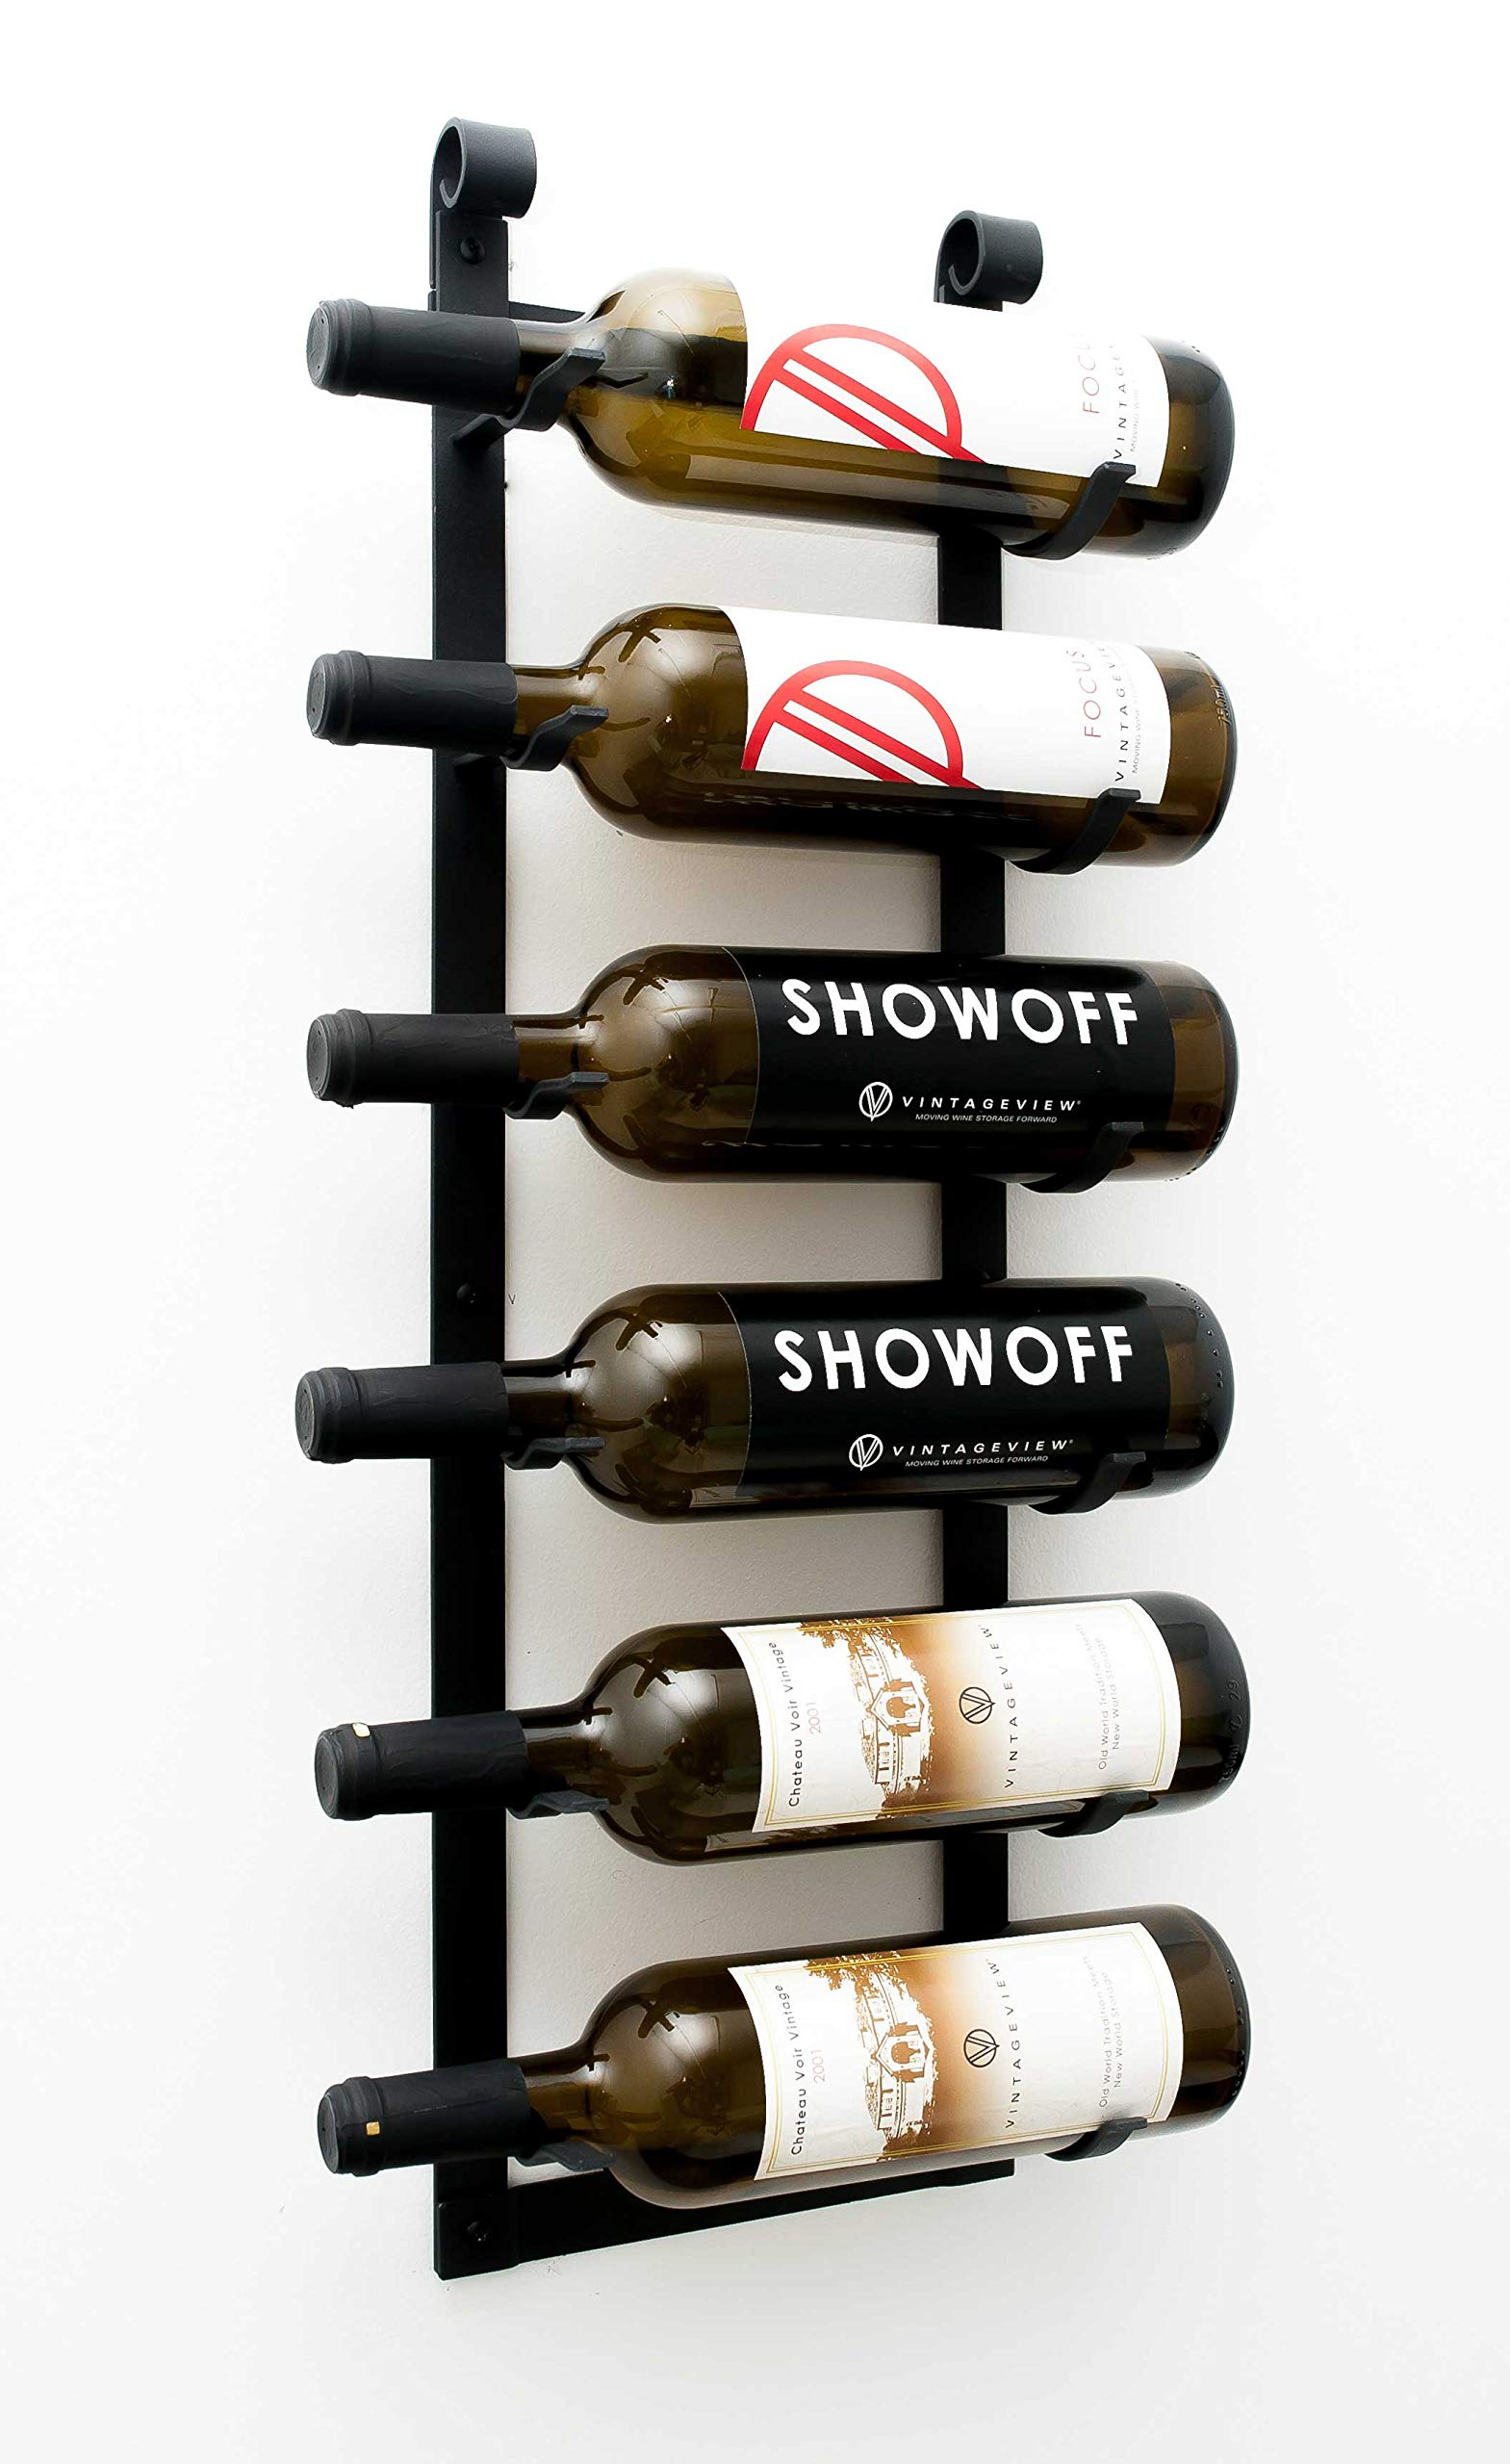 VintageView Wall Series - Le Rustique 6 Bottle Wall Mounted Wine Rack Stylish Modern Wine Storage with Label Forward Design by VintageView